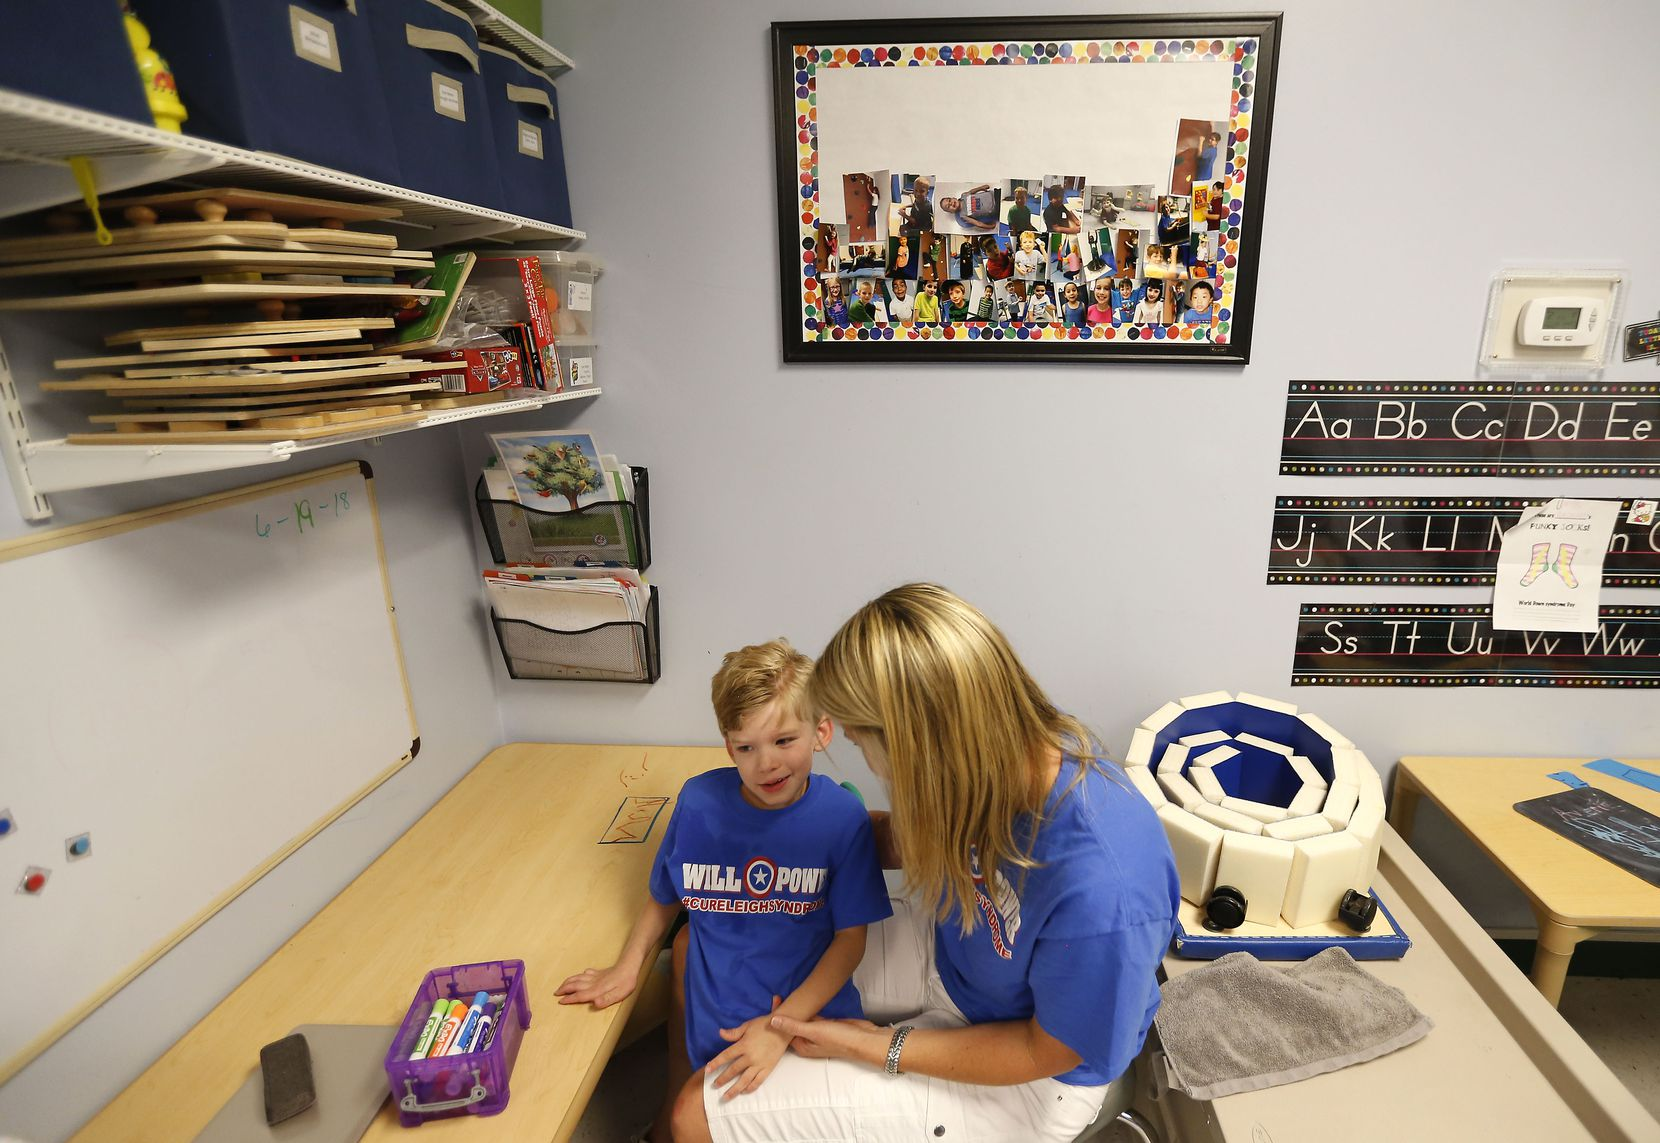 Occupational Therapy specialist Julie Bayless works with Will at Keystone Pediatric Therapy in McKinney, Texas, on June 20, 2018.